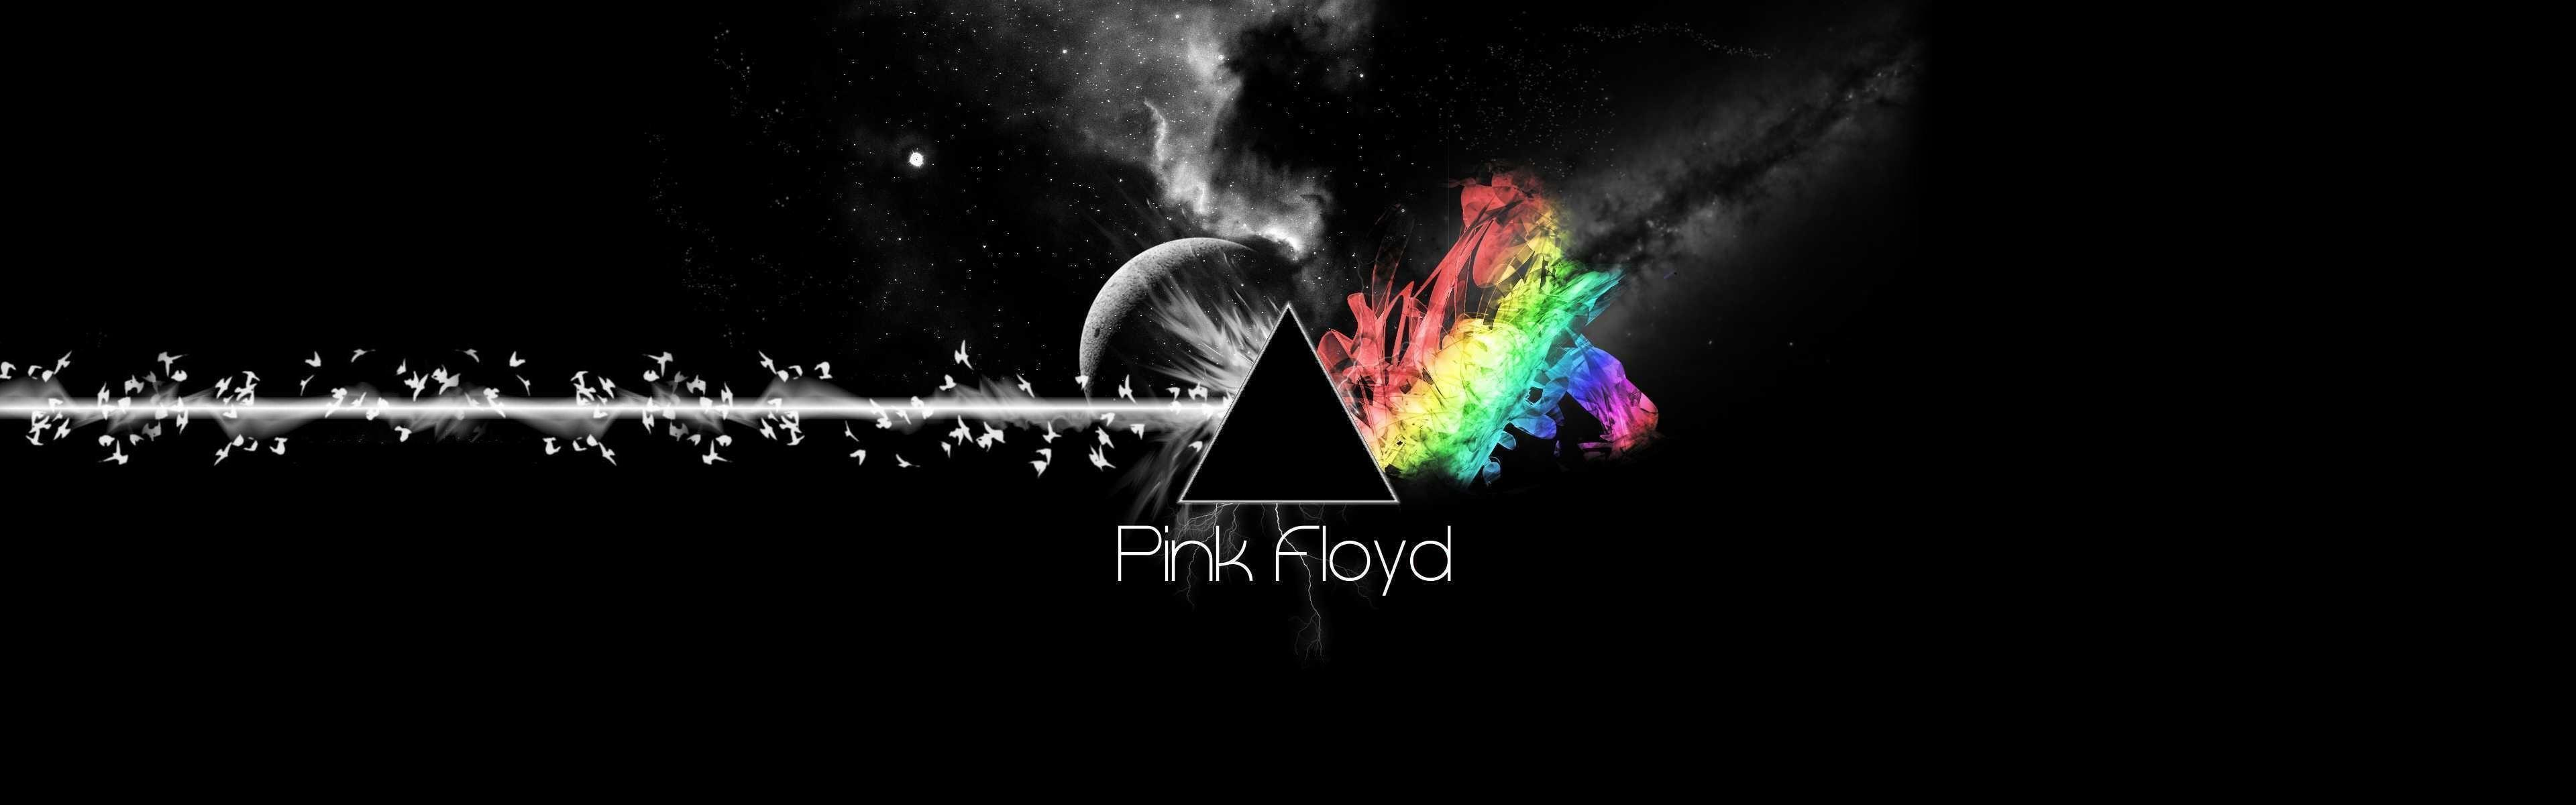 Wallpapers Pink floyd music Wallpapers and Free Stock Photos